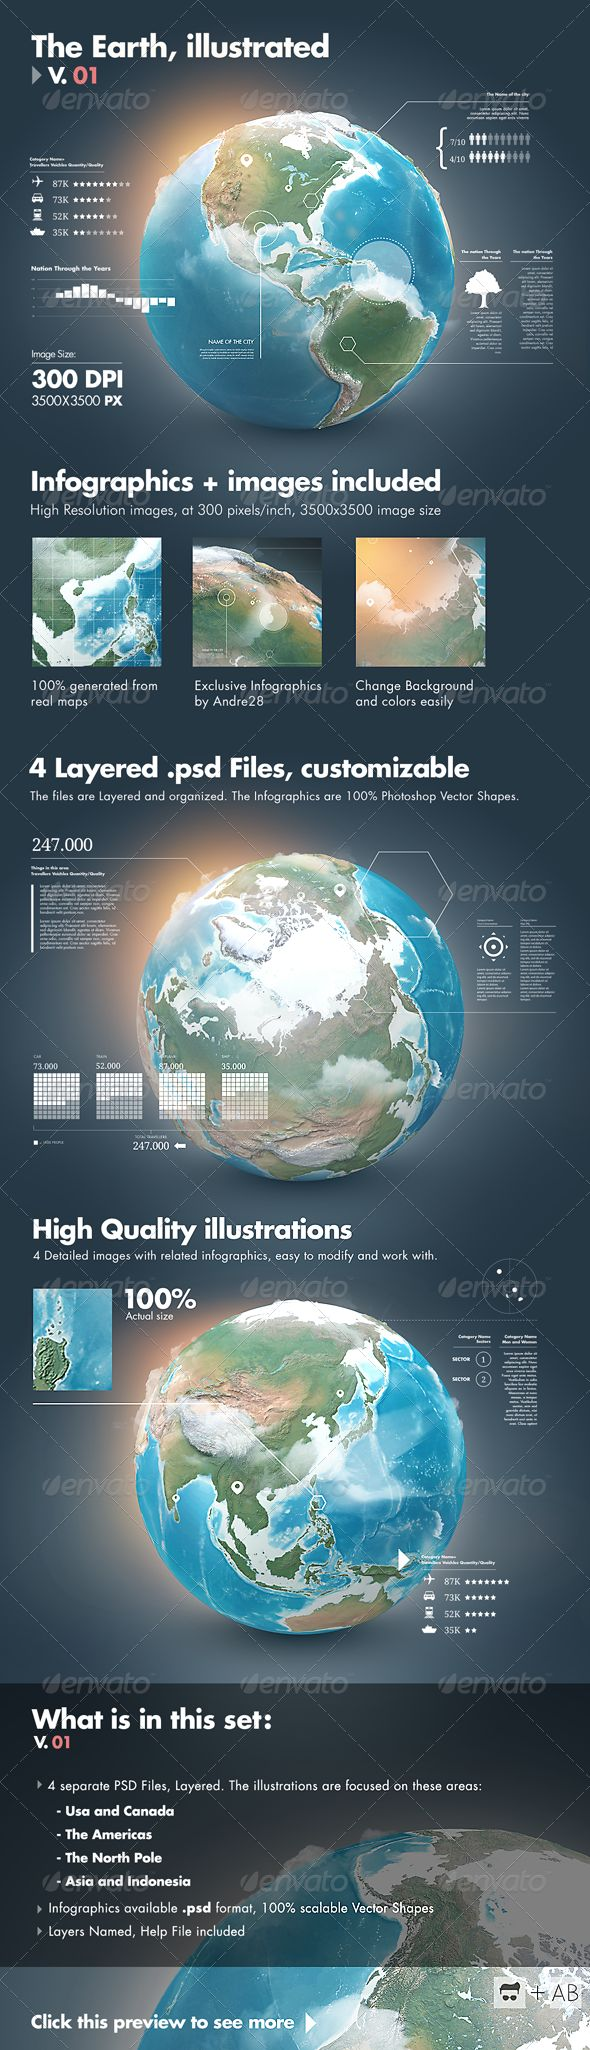 15 best prezi infographic images on pinterest infographics get the other set world infographics illustrations of the earth layered in d format high resolution images at publicscrutiny